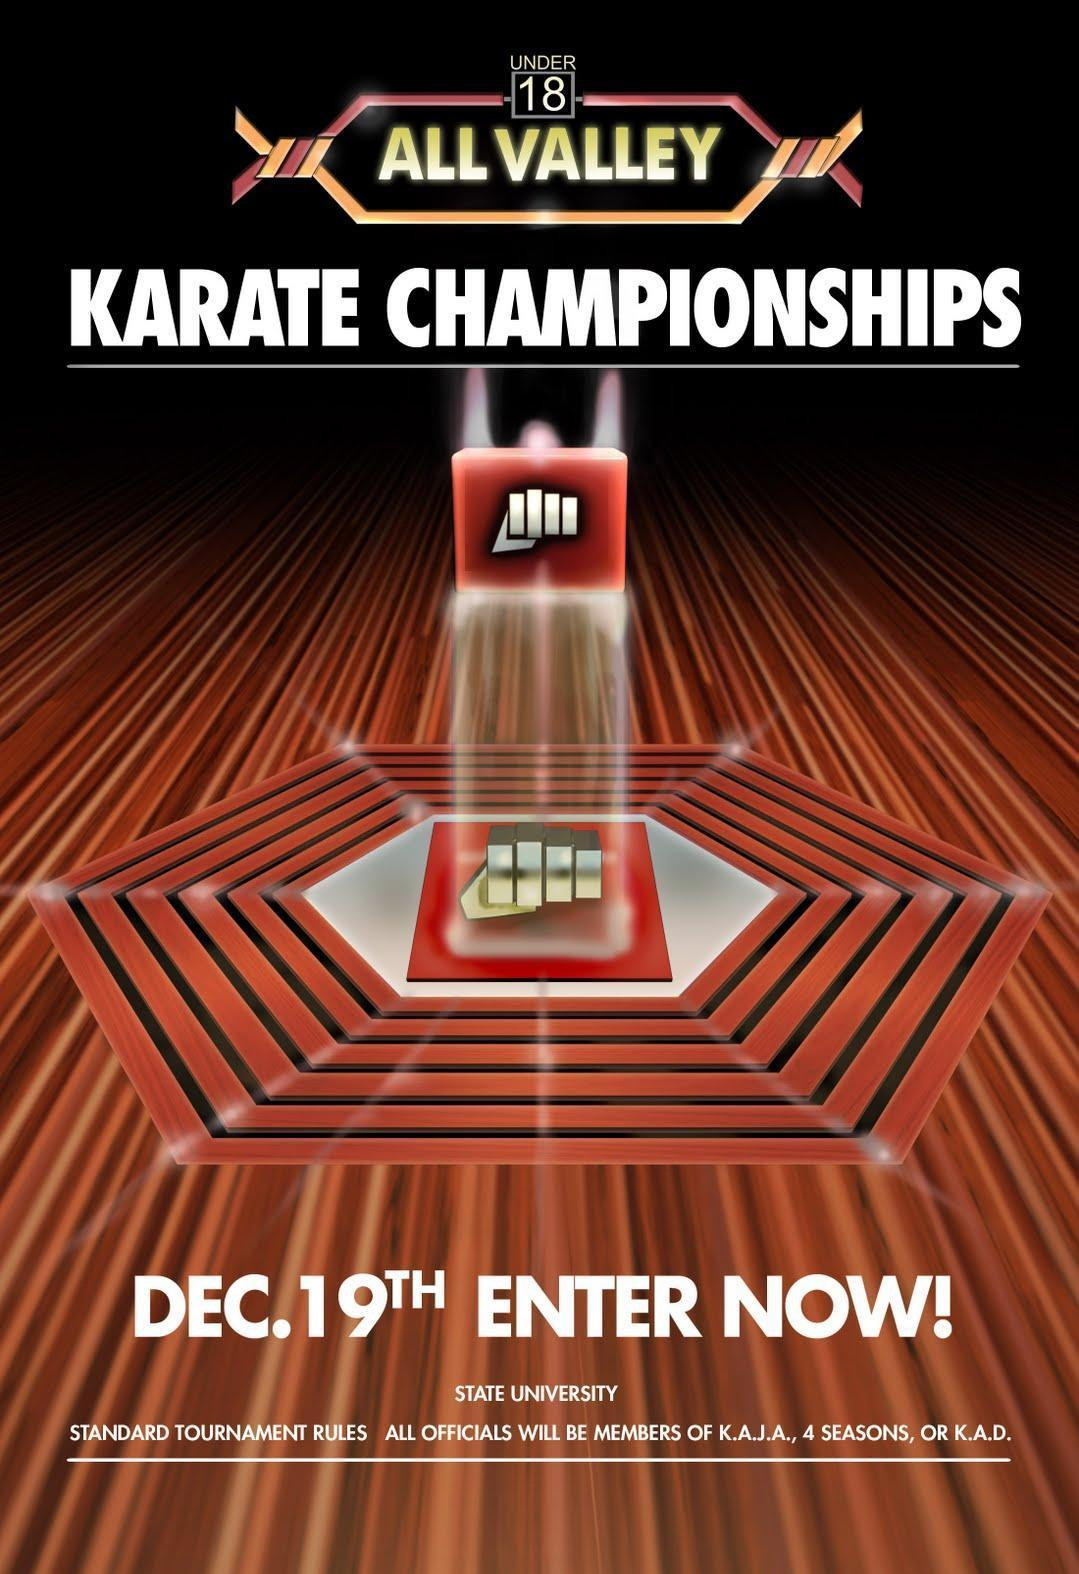 72192-Karate-Kid-Tournament-All-Valley-From-1984-Movie-Wall-Print-Poster-Affiche